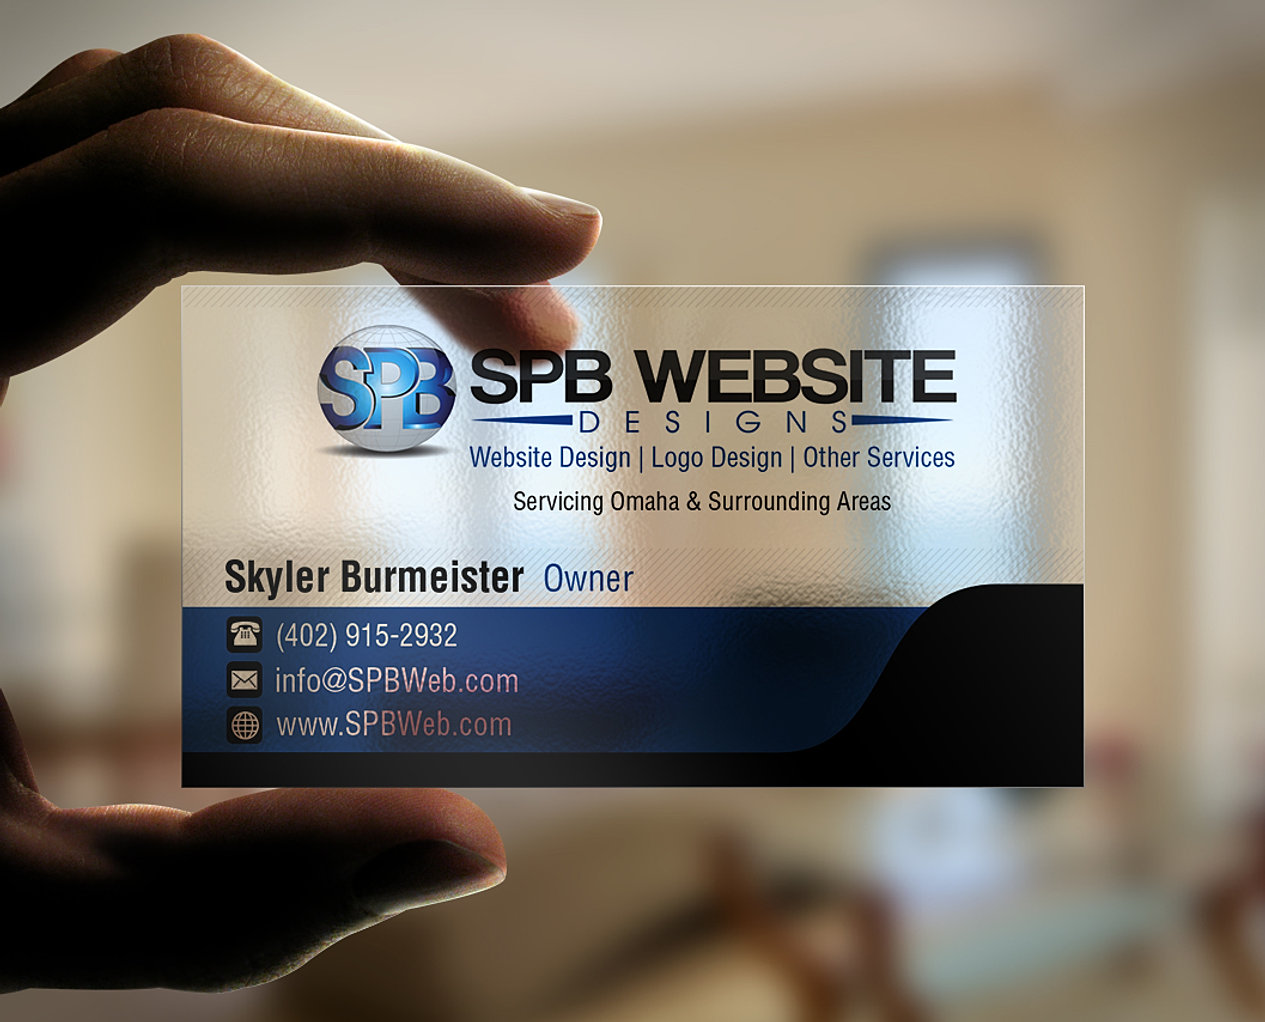 Cards & Flyers - SPB Website Designs